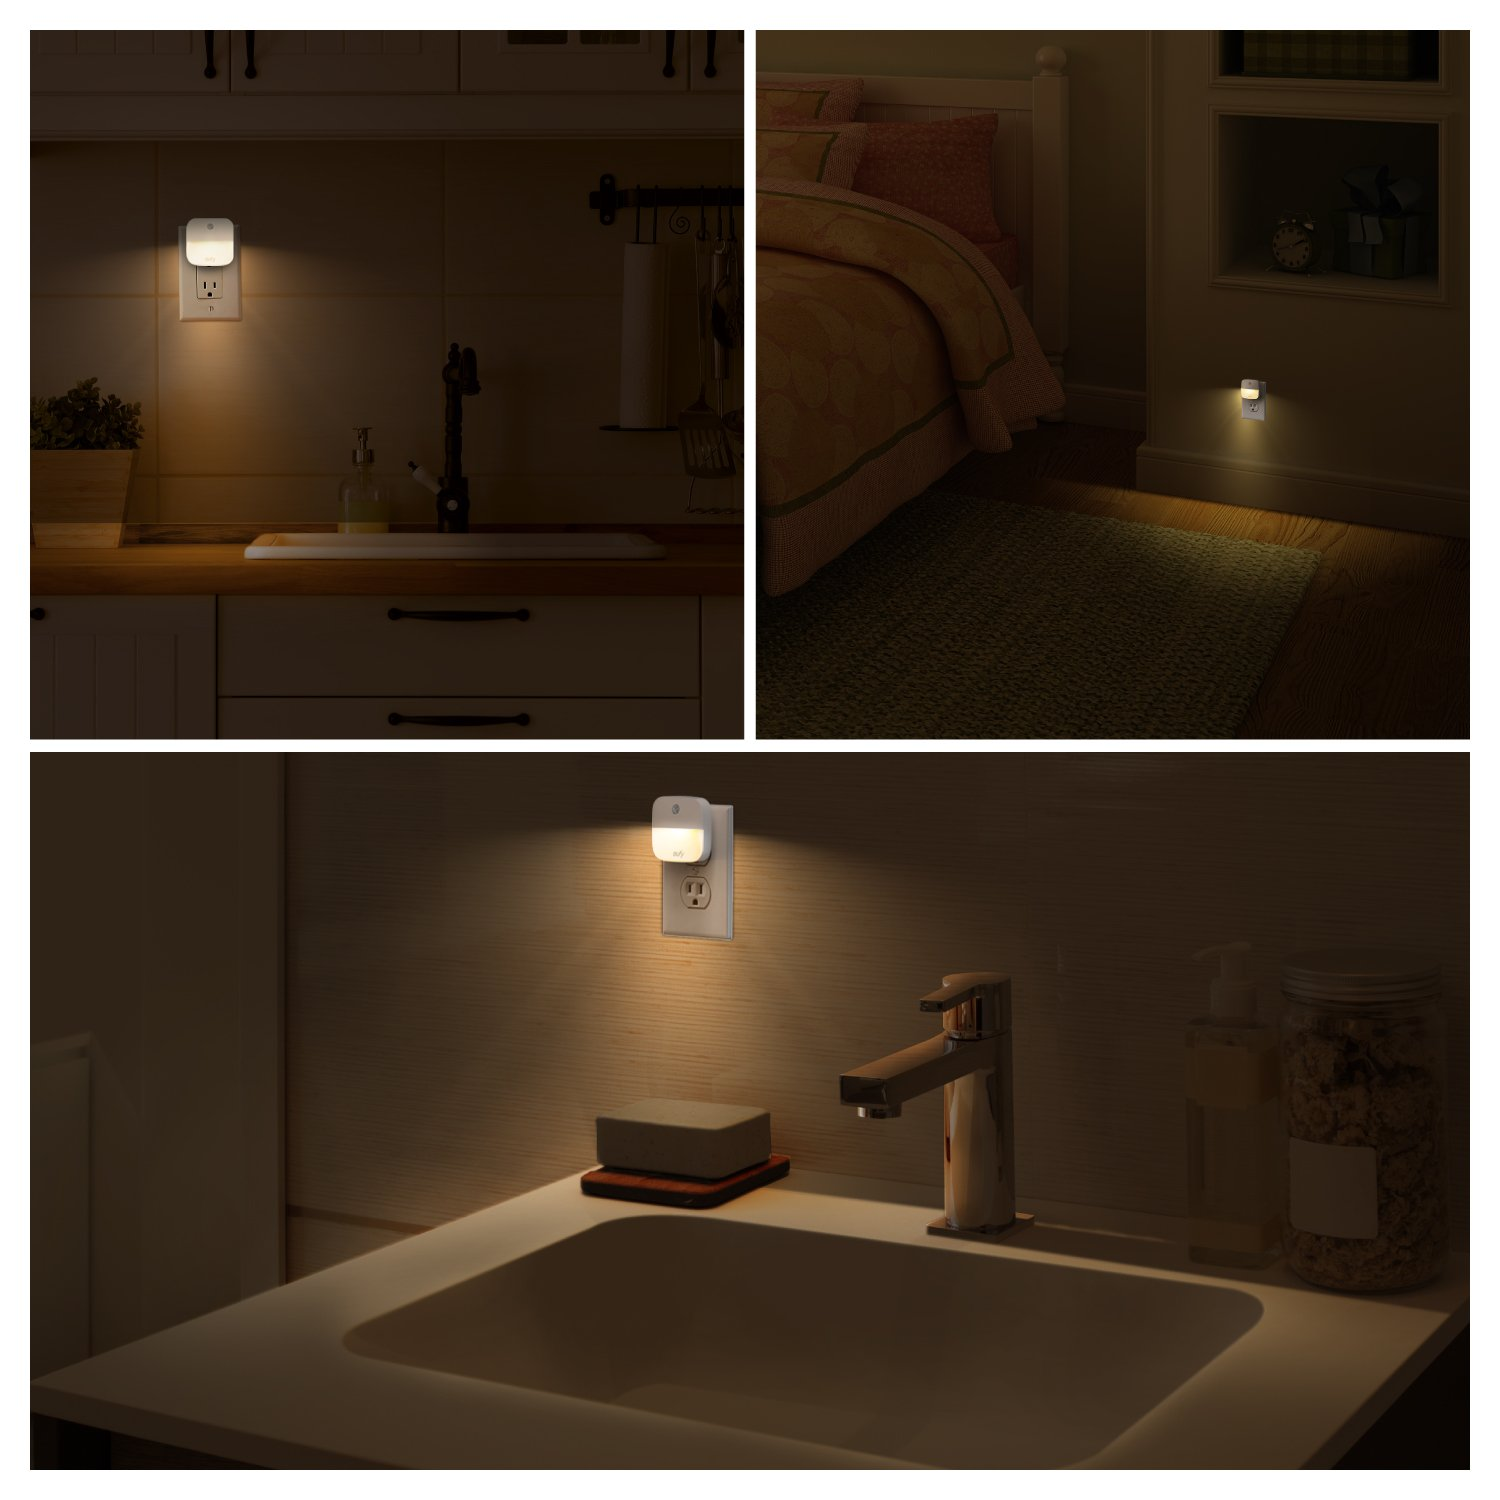 eufy Lumi Plug-In Night Light, Warm White LED Nightlight, Dusk-To-Dawn Sensor, Bedroom, Bathroom, Kitchen, Hallway, Stairs, Energy Efficient, Compact, 4-pack by eufy (Image #7)